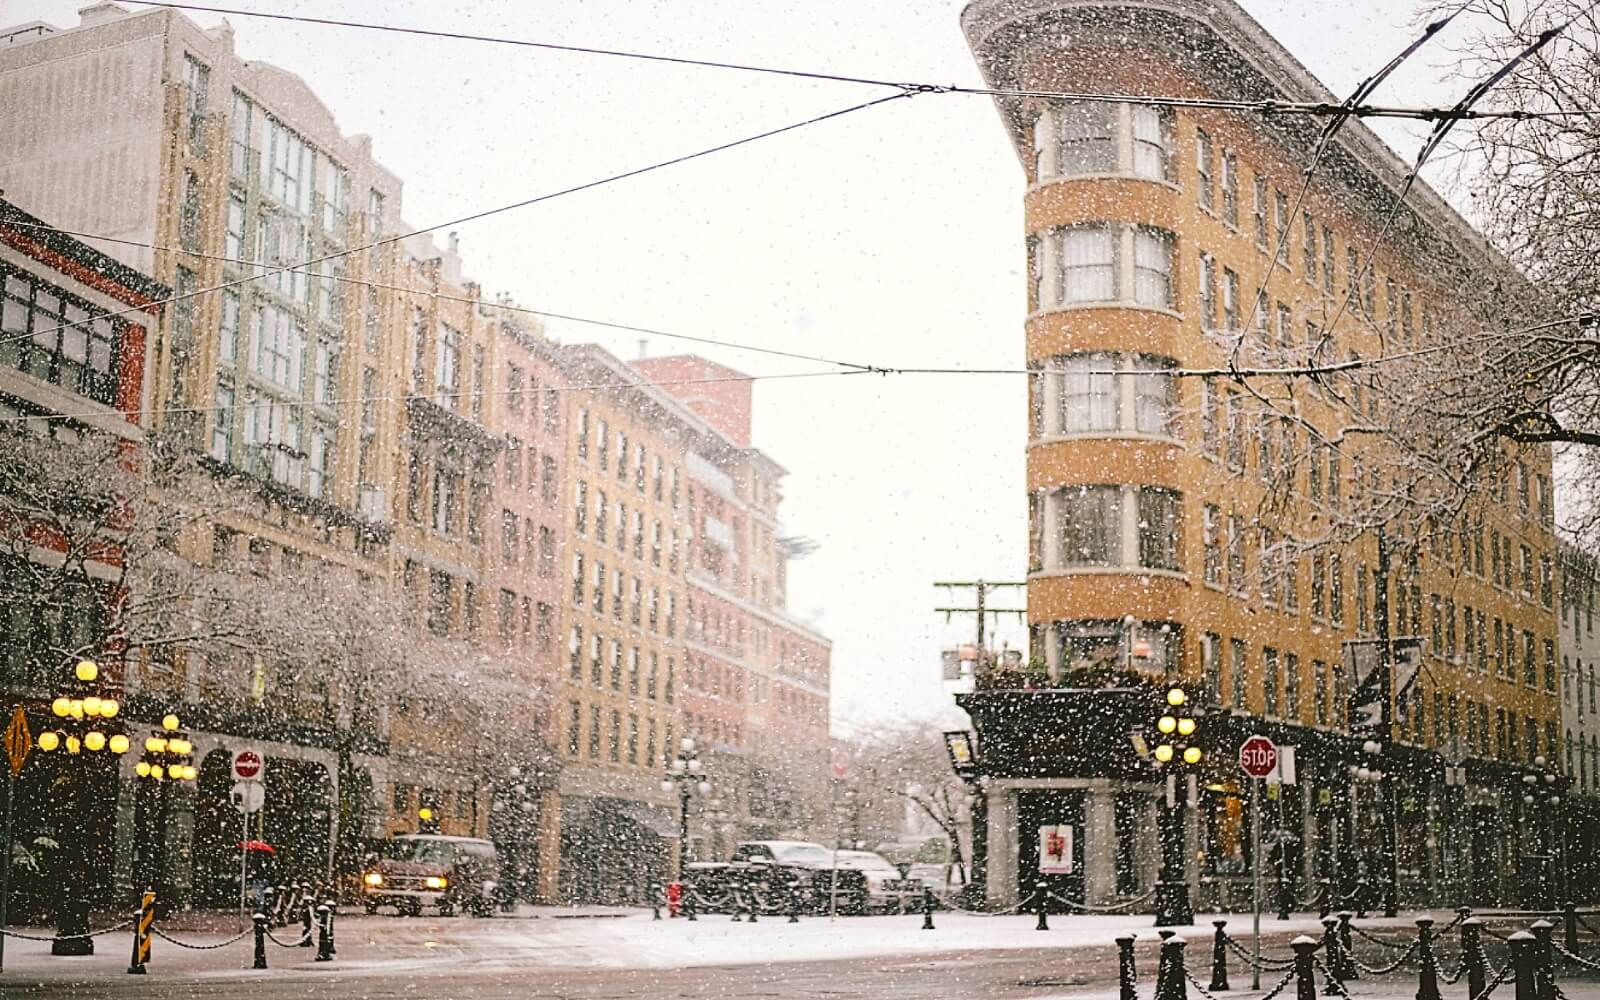 Snow falls in Maple Tree Square, Gastown